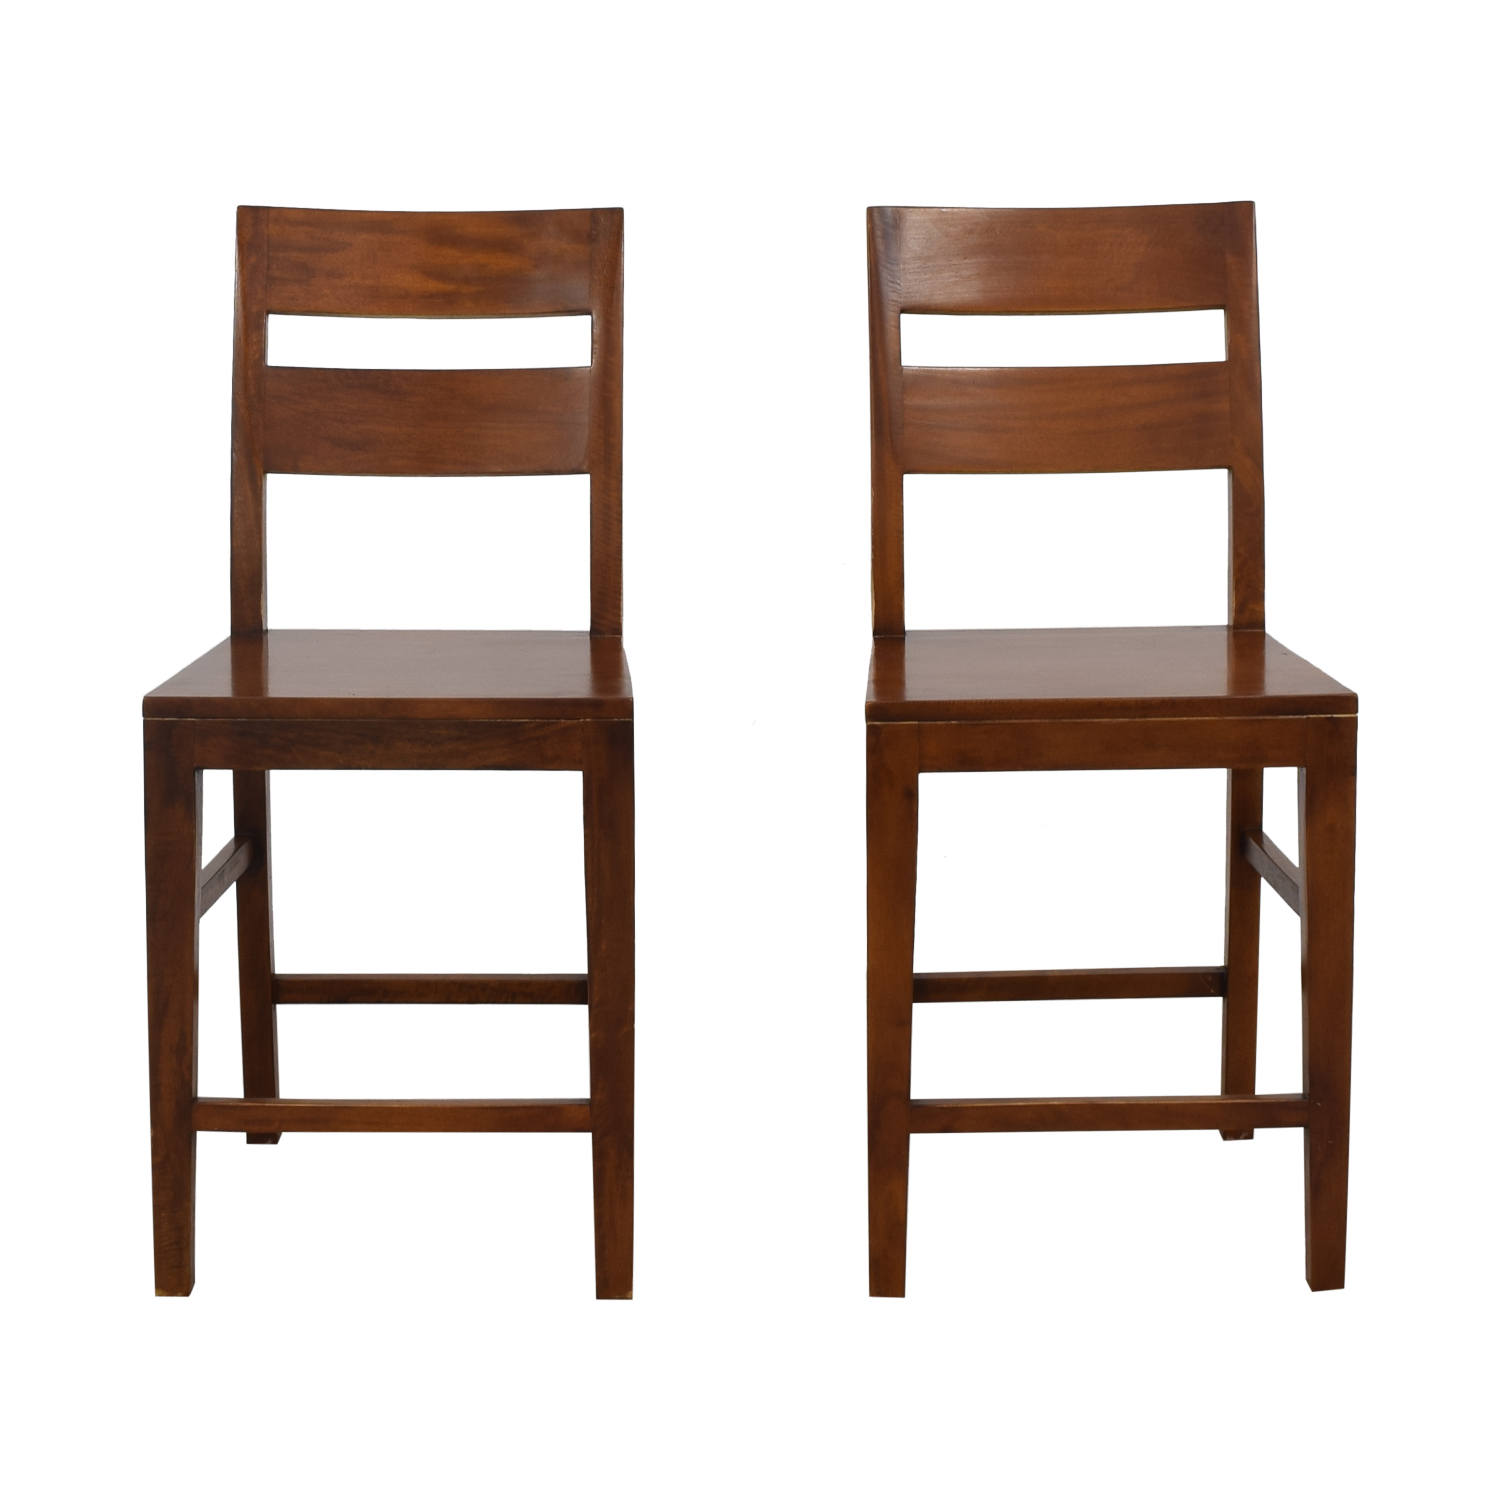 shop Crate & Barrel Basque Counter Stools Crate & Barrel